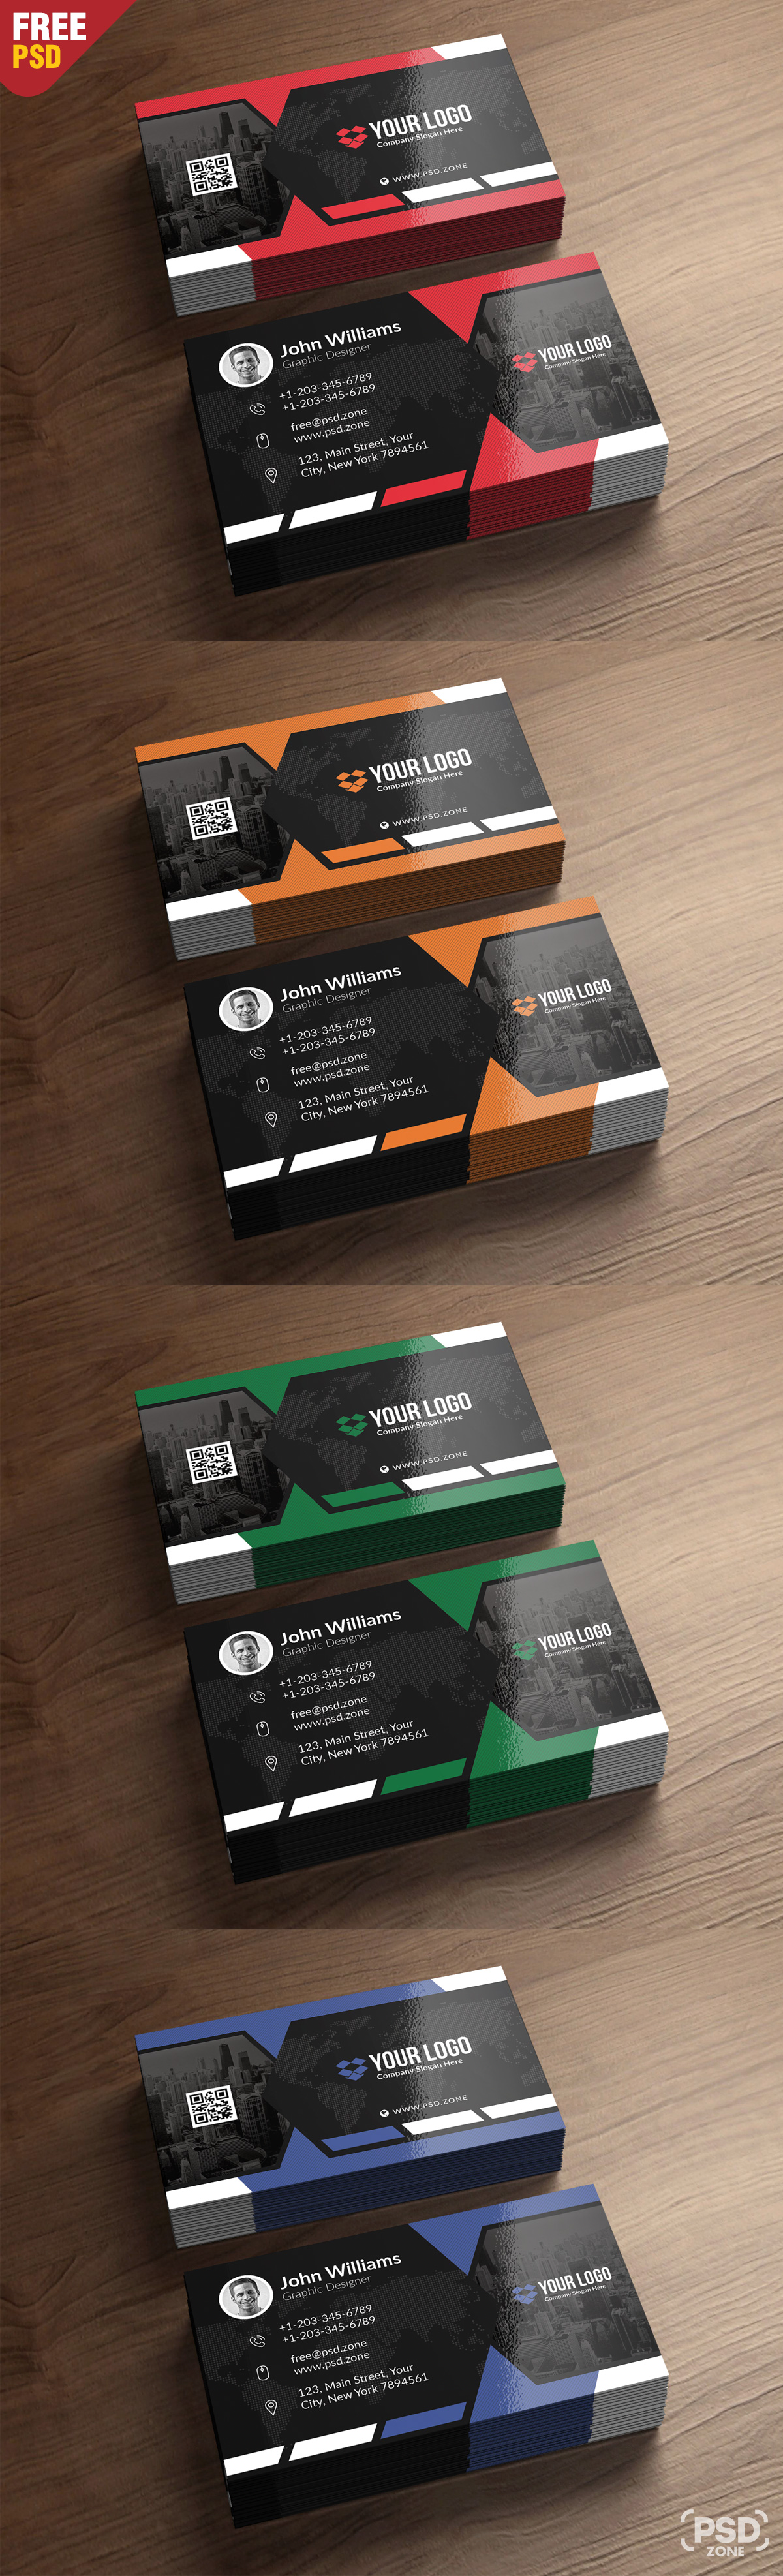 Premium business card templates free psd psd zone premium business card templates free psd accmission Image collections